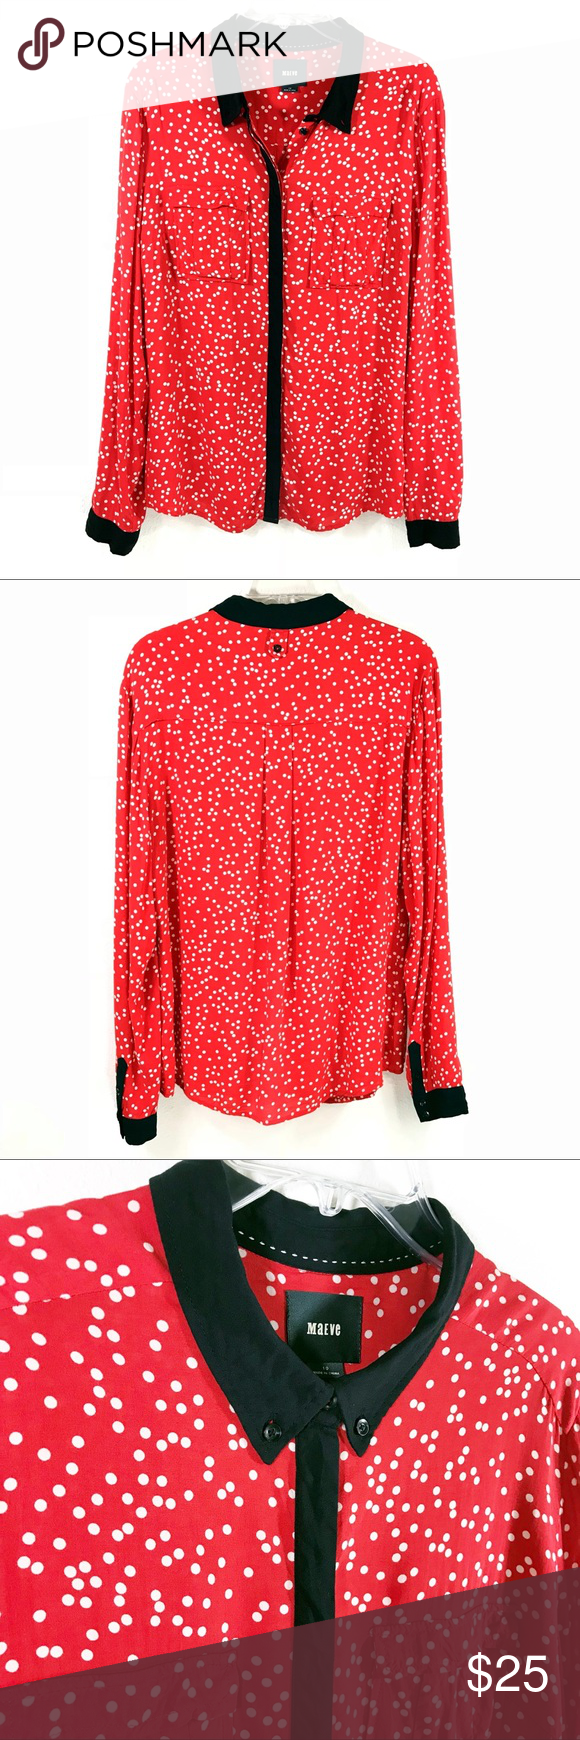 8b3da246ed268 Anthropologie MaEVe Red White Polka Dot Anthropologie MaEVe Red White Polka  Dot w  black trim button down blouse size 10 • EUC no flaws • secure  buttons ...